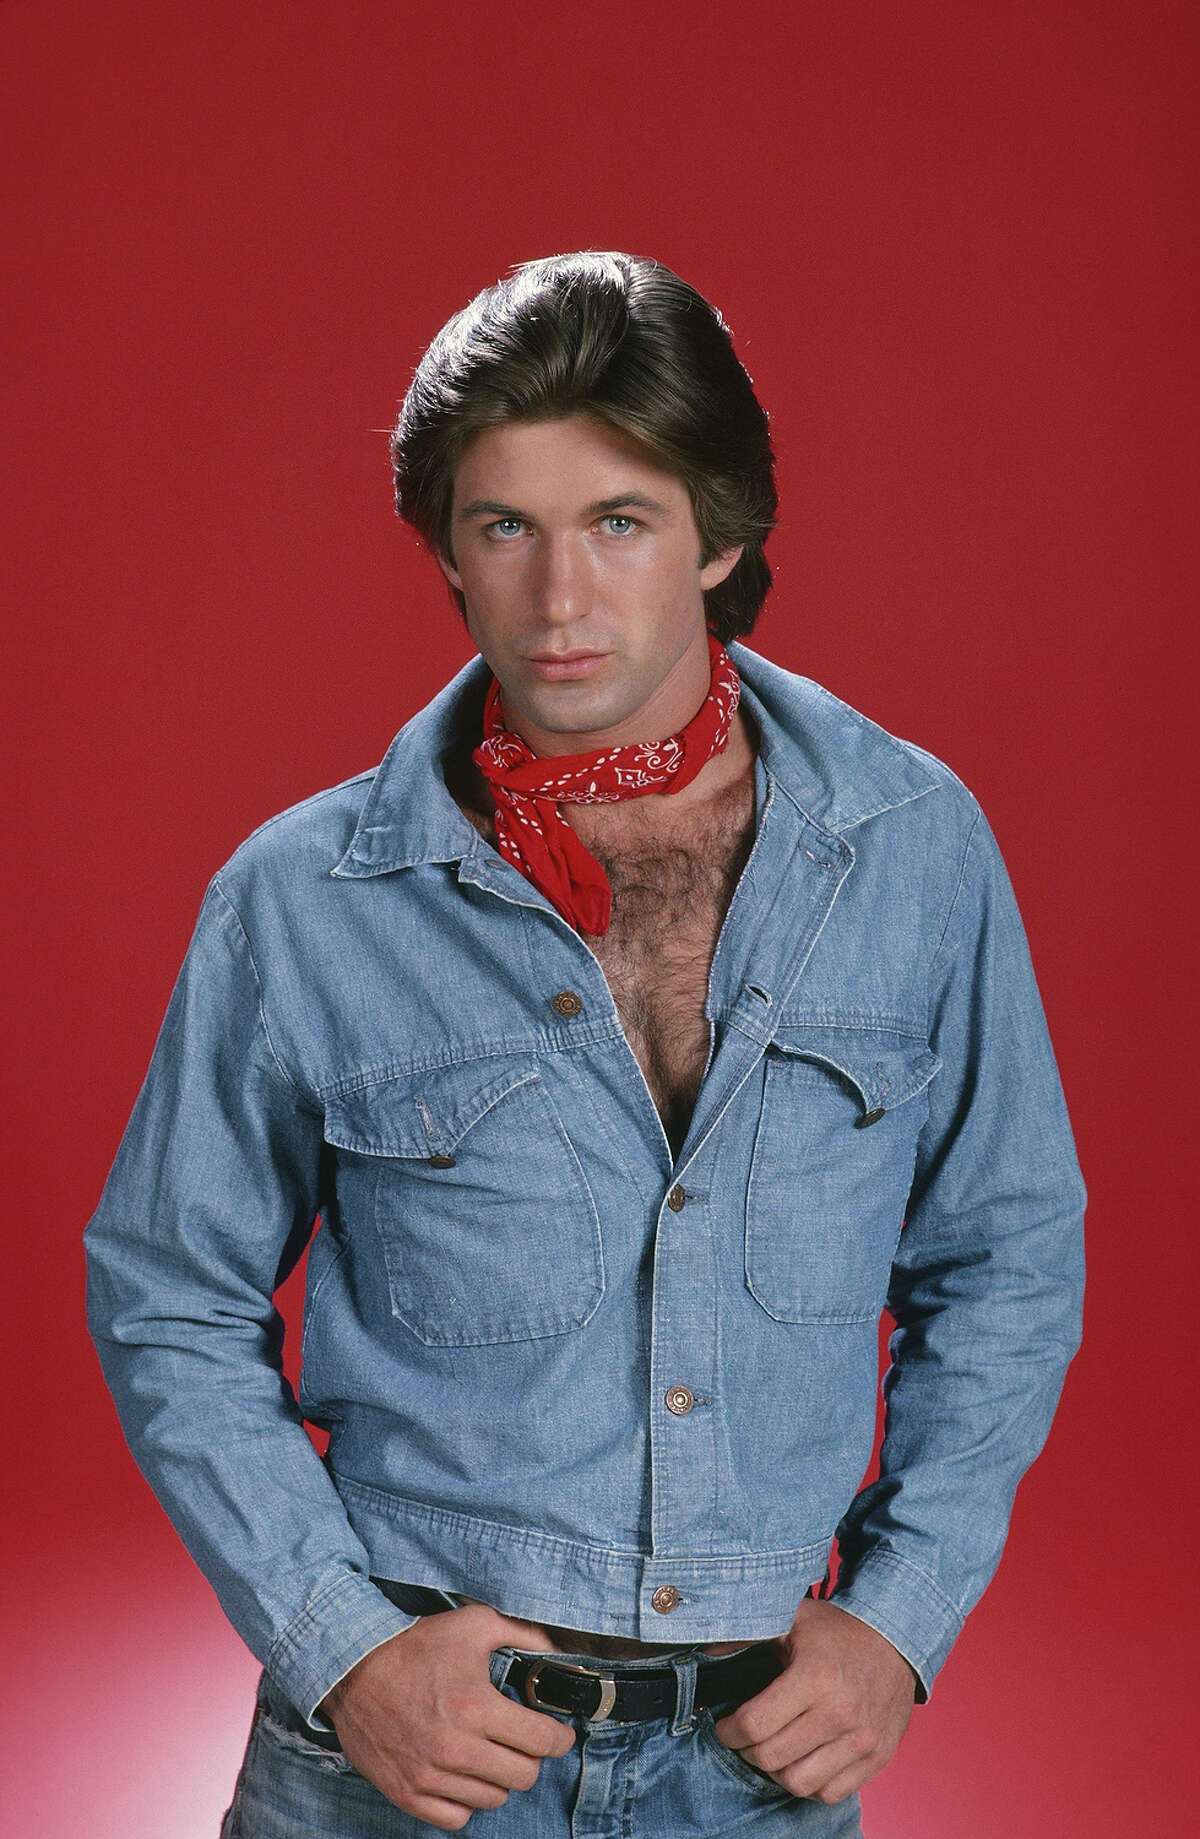 Alec Baldwin displays perhaps the most glorious example of a Canadian tuxedo the world has ever seen, complete with the optional bandana accessory,